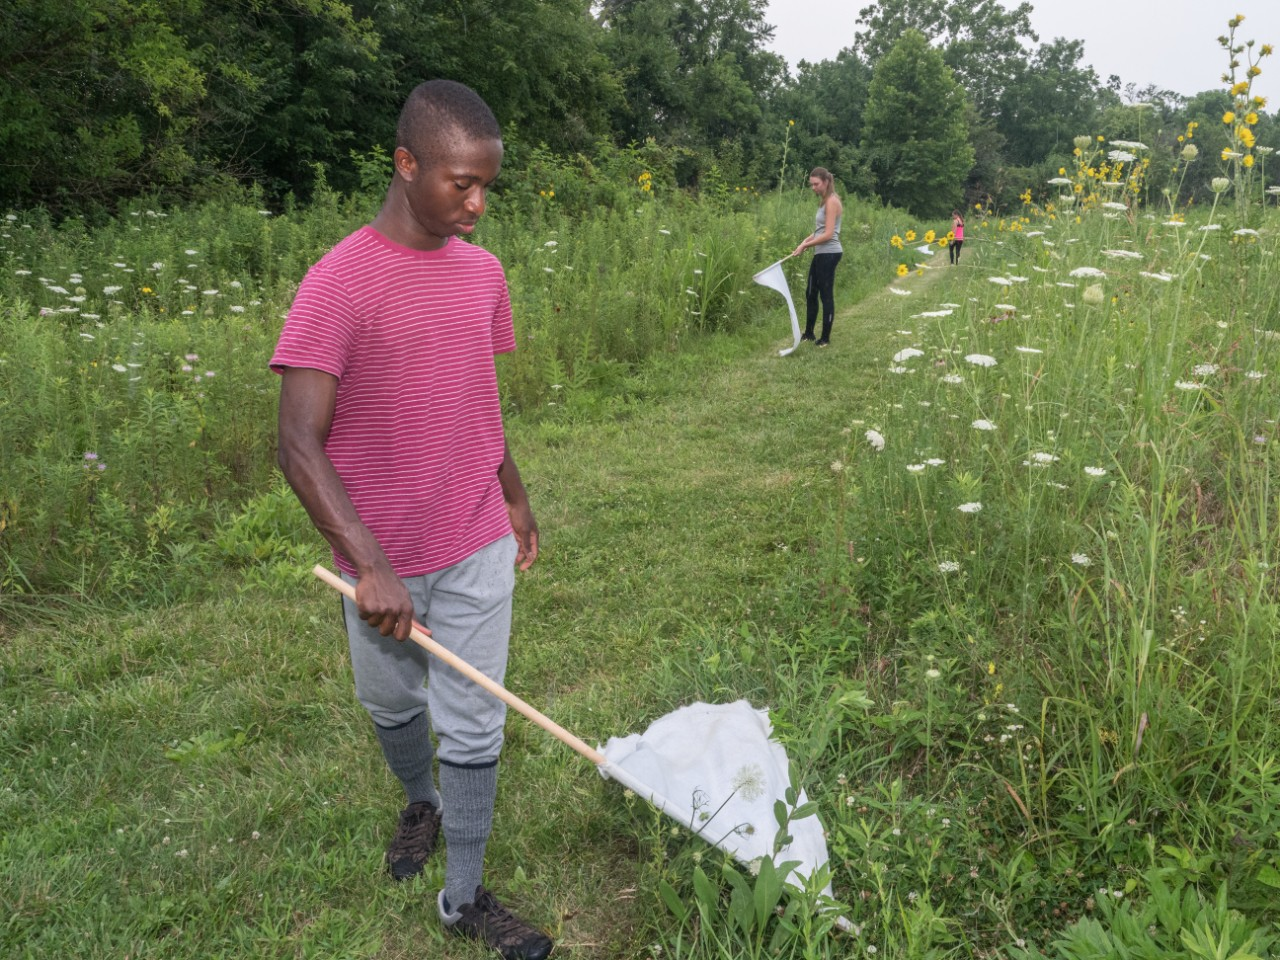 A UC student in long pants and a T-shirt drags a white linen flag along tall weeds with other students doing likewise behind him.